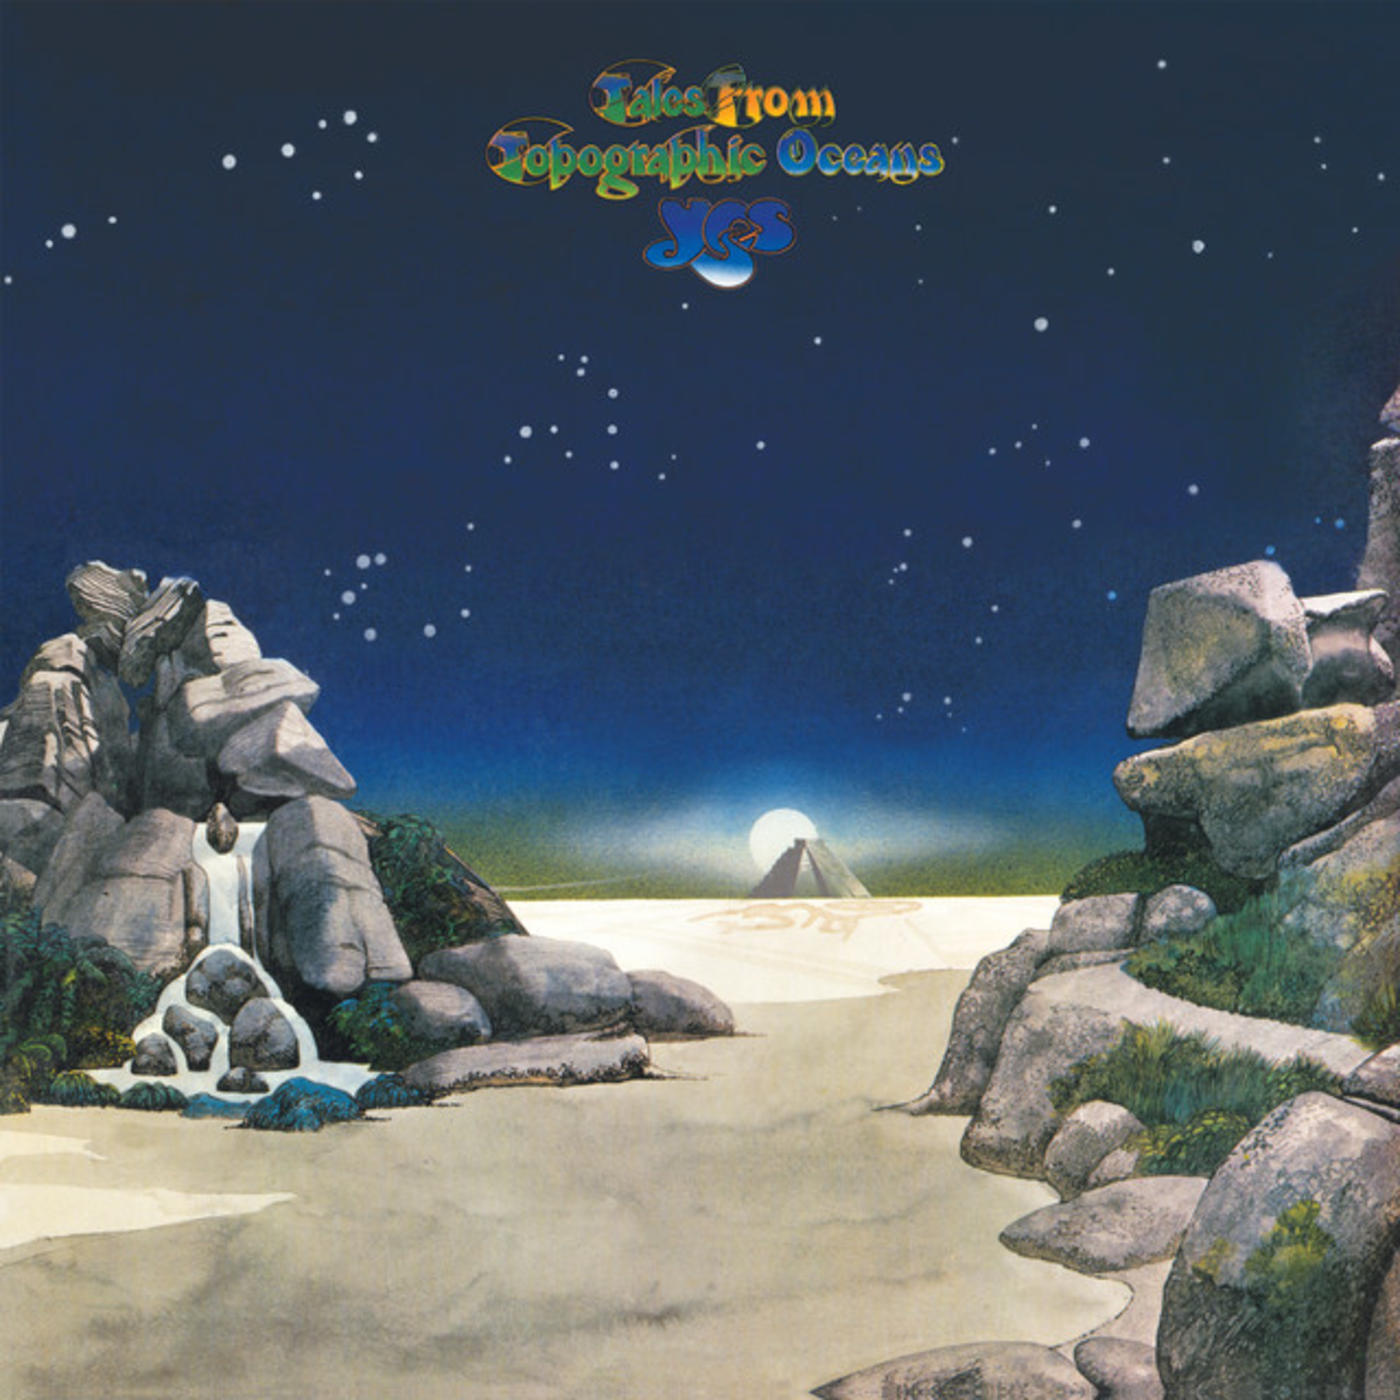 Doing A 180 Yes Tales From Topographic Oceans Rhino